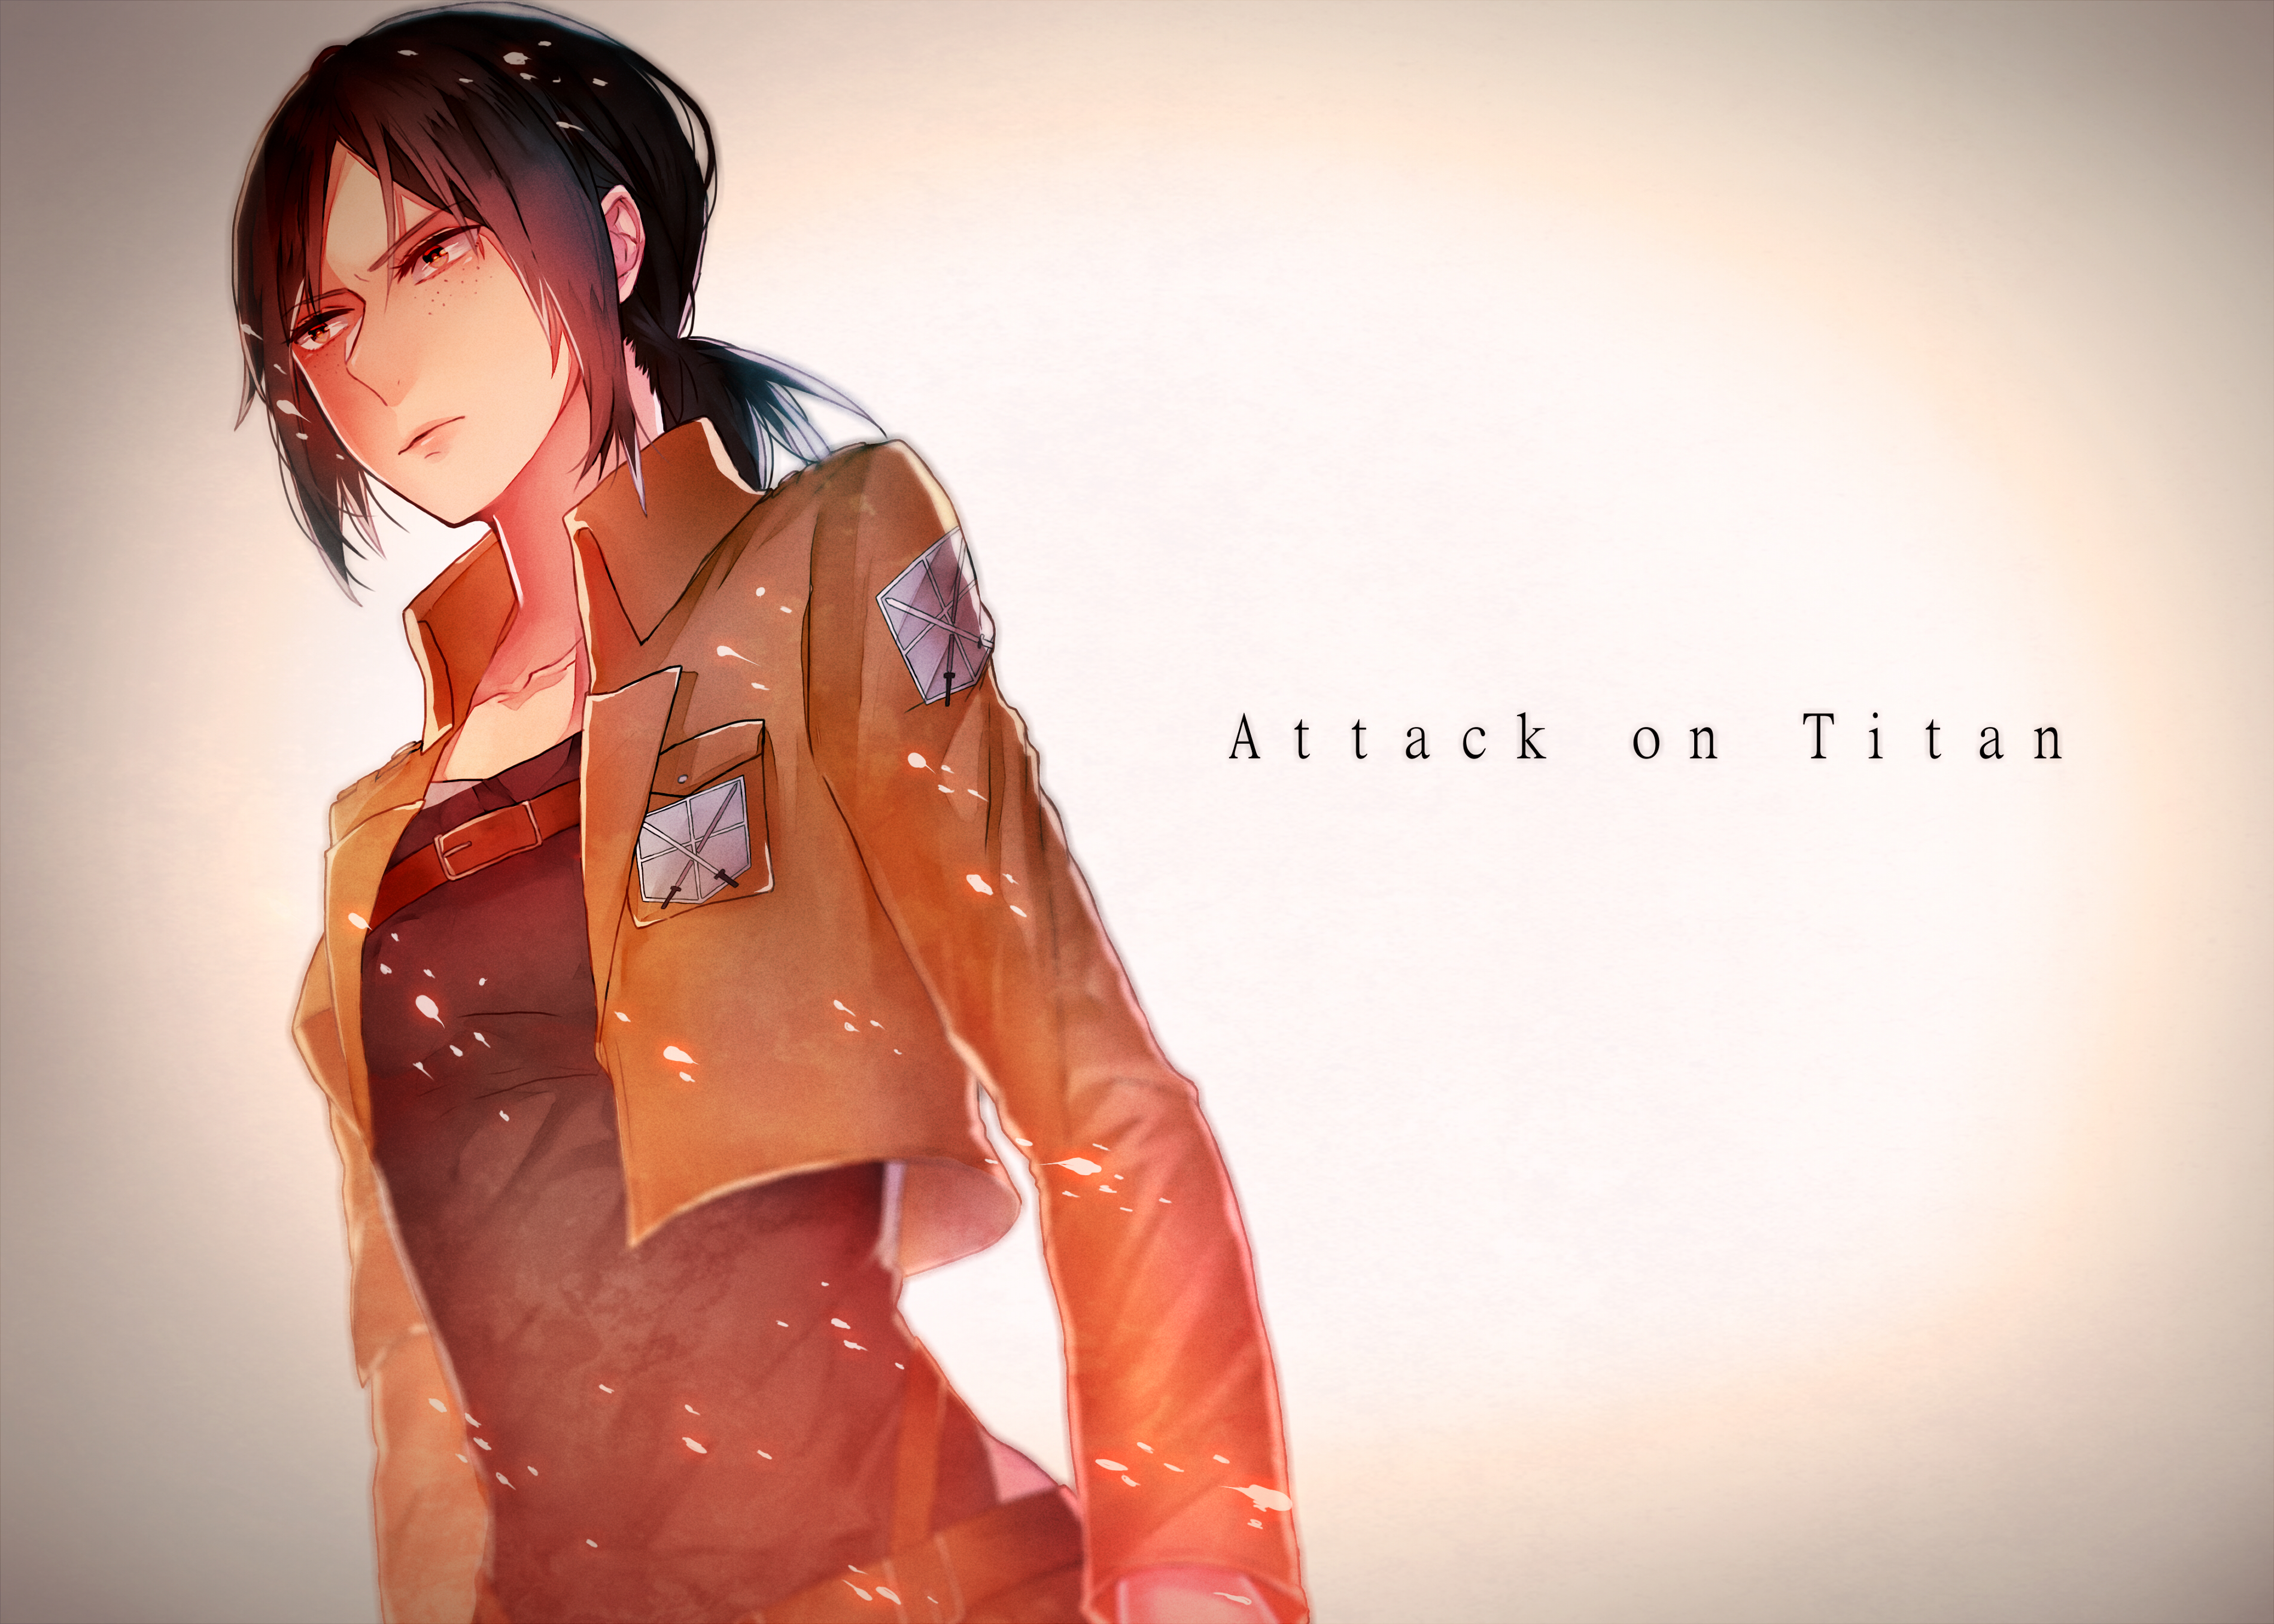 Ymir Shingeki No Kyojin Attack On Titan Zerochan Anime Image Board